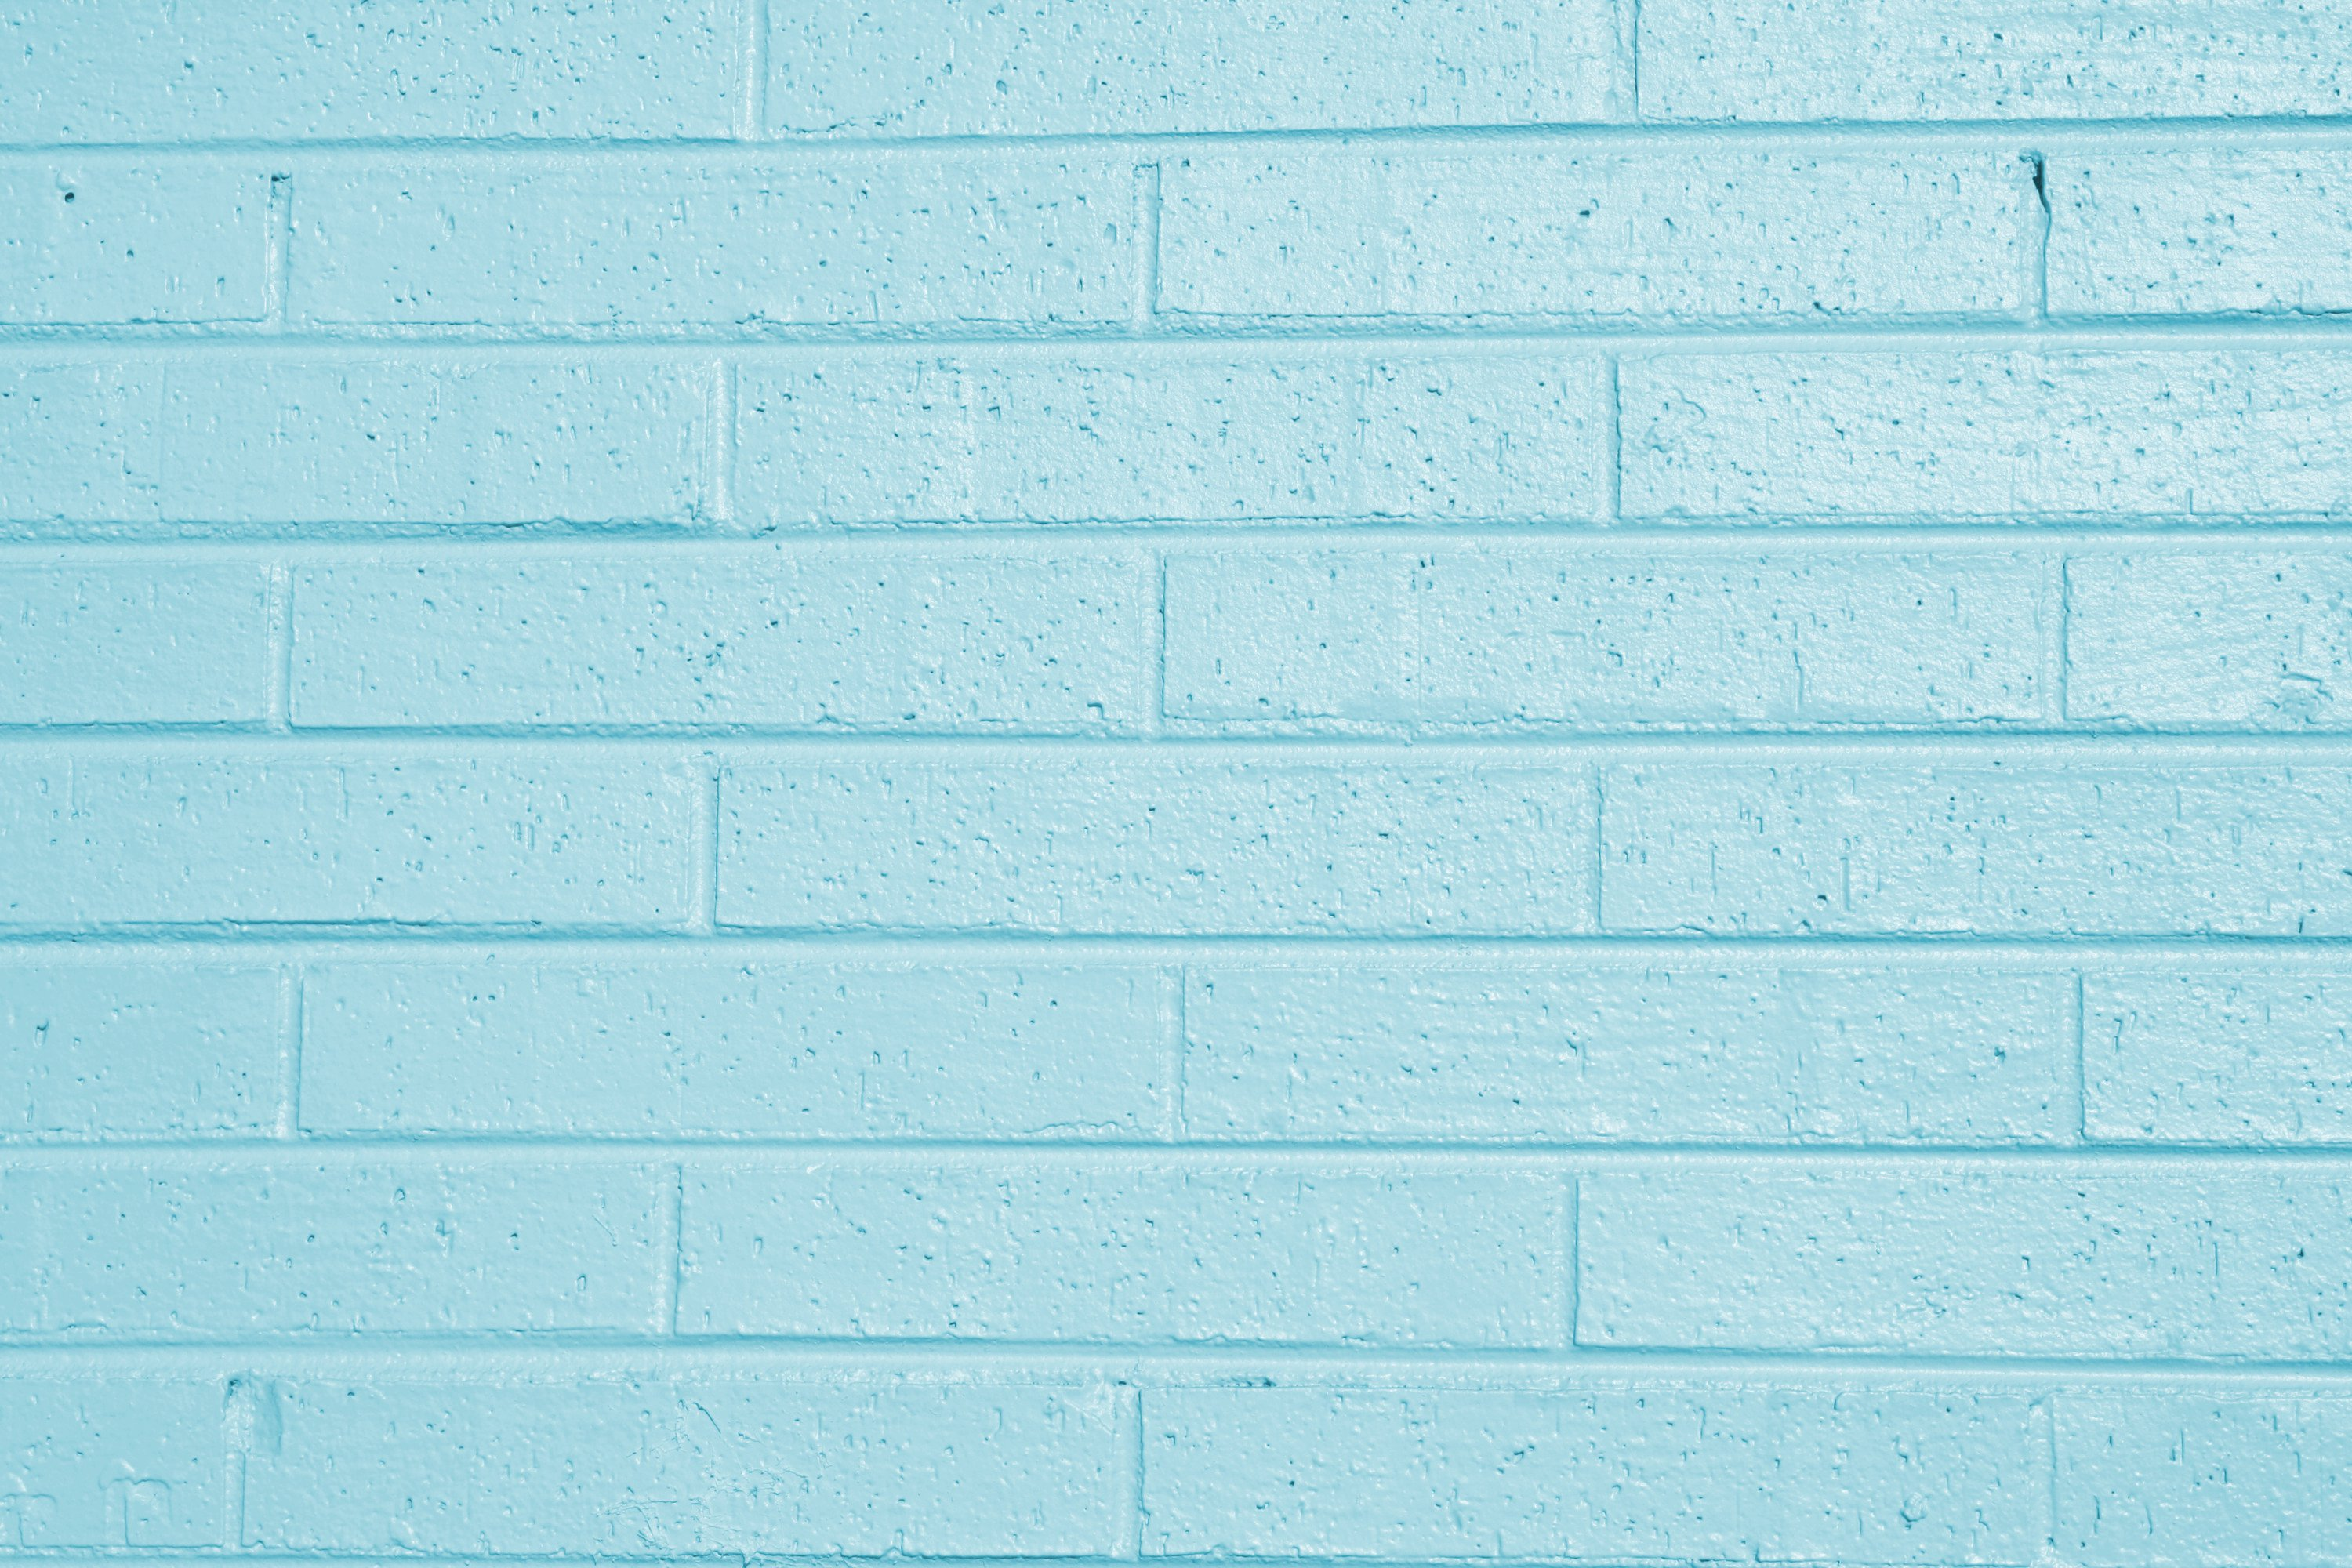 Teal Blue Painted Brick Wall Texture   High Resolution Photo 3000x2000